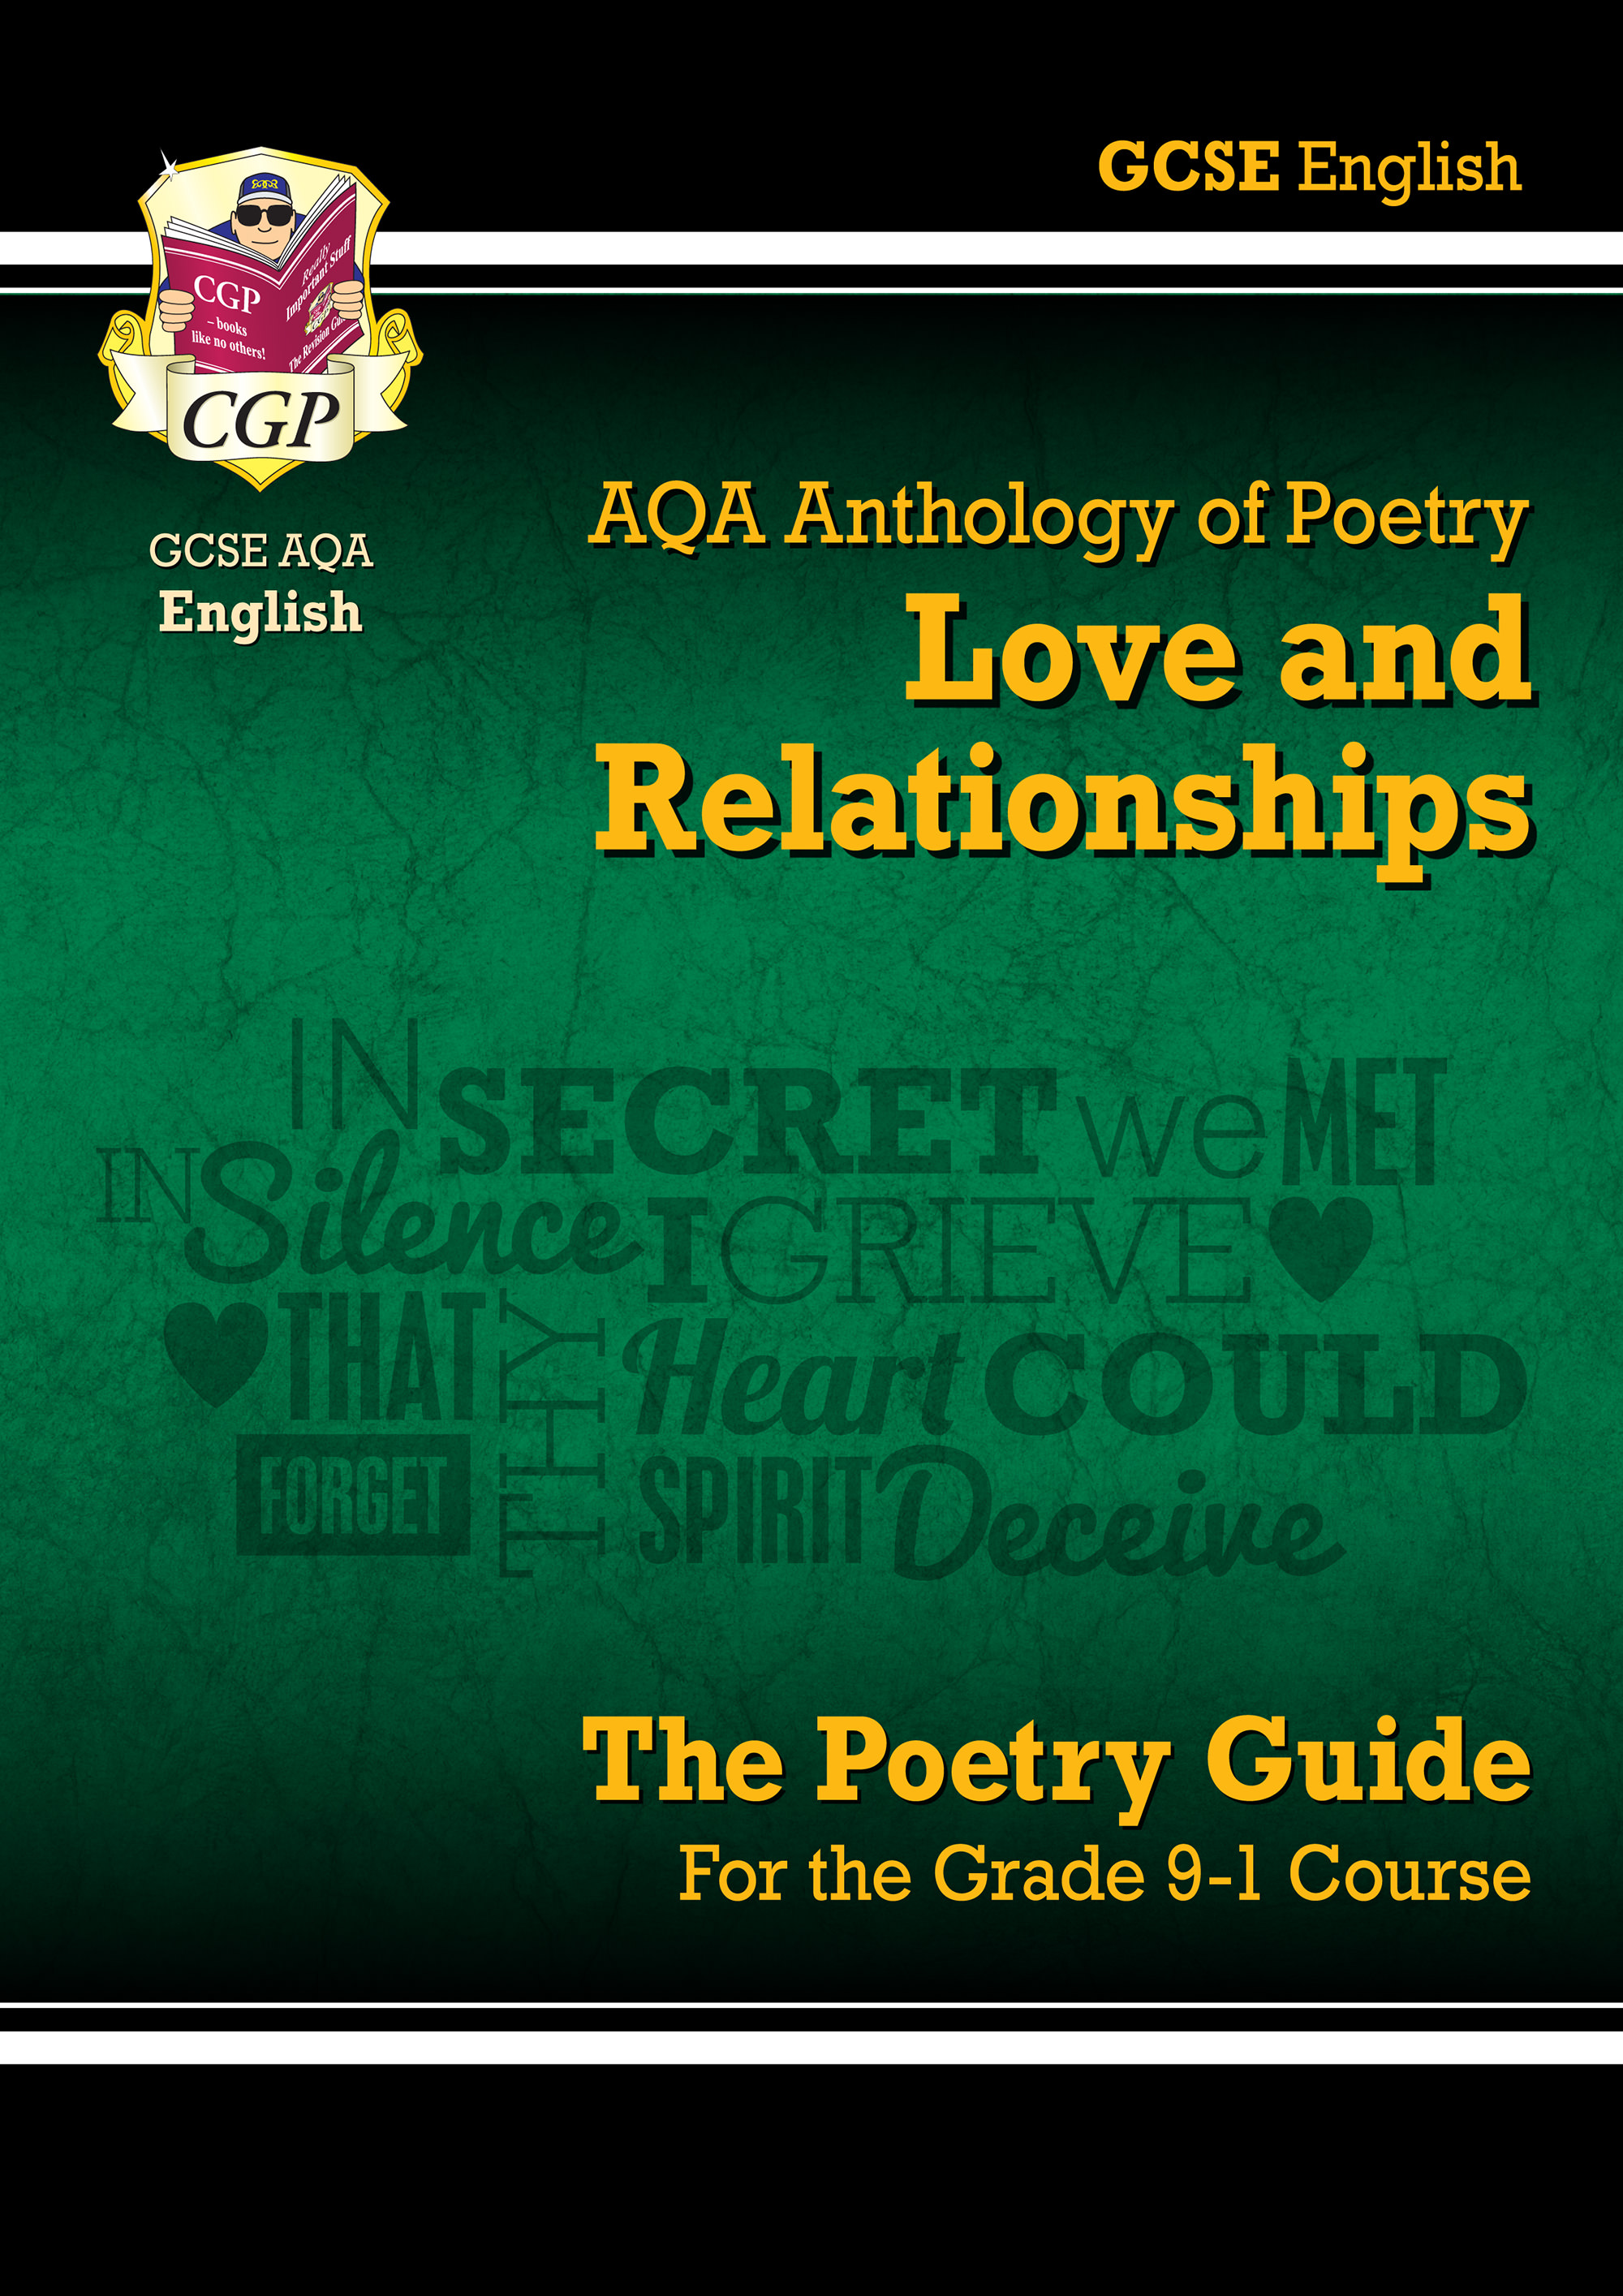 ARHR43 - GCSE English Literature AQA Poetry Guide: Love & Relationships Anthology - the Grade 9-1 Co